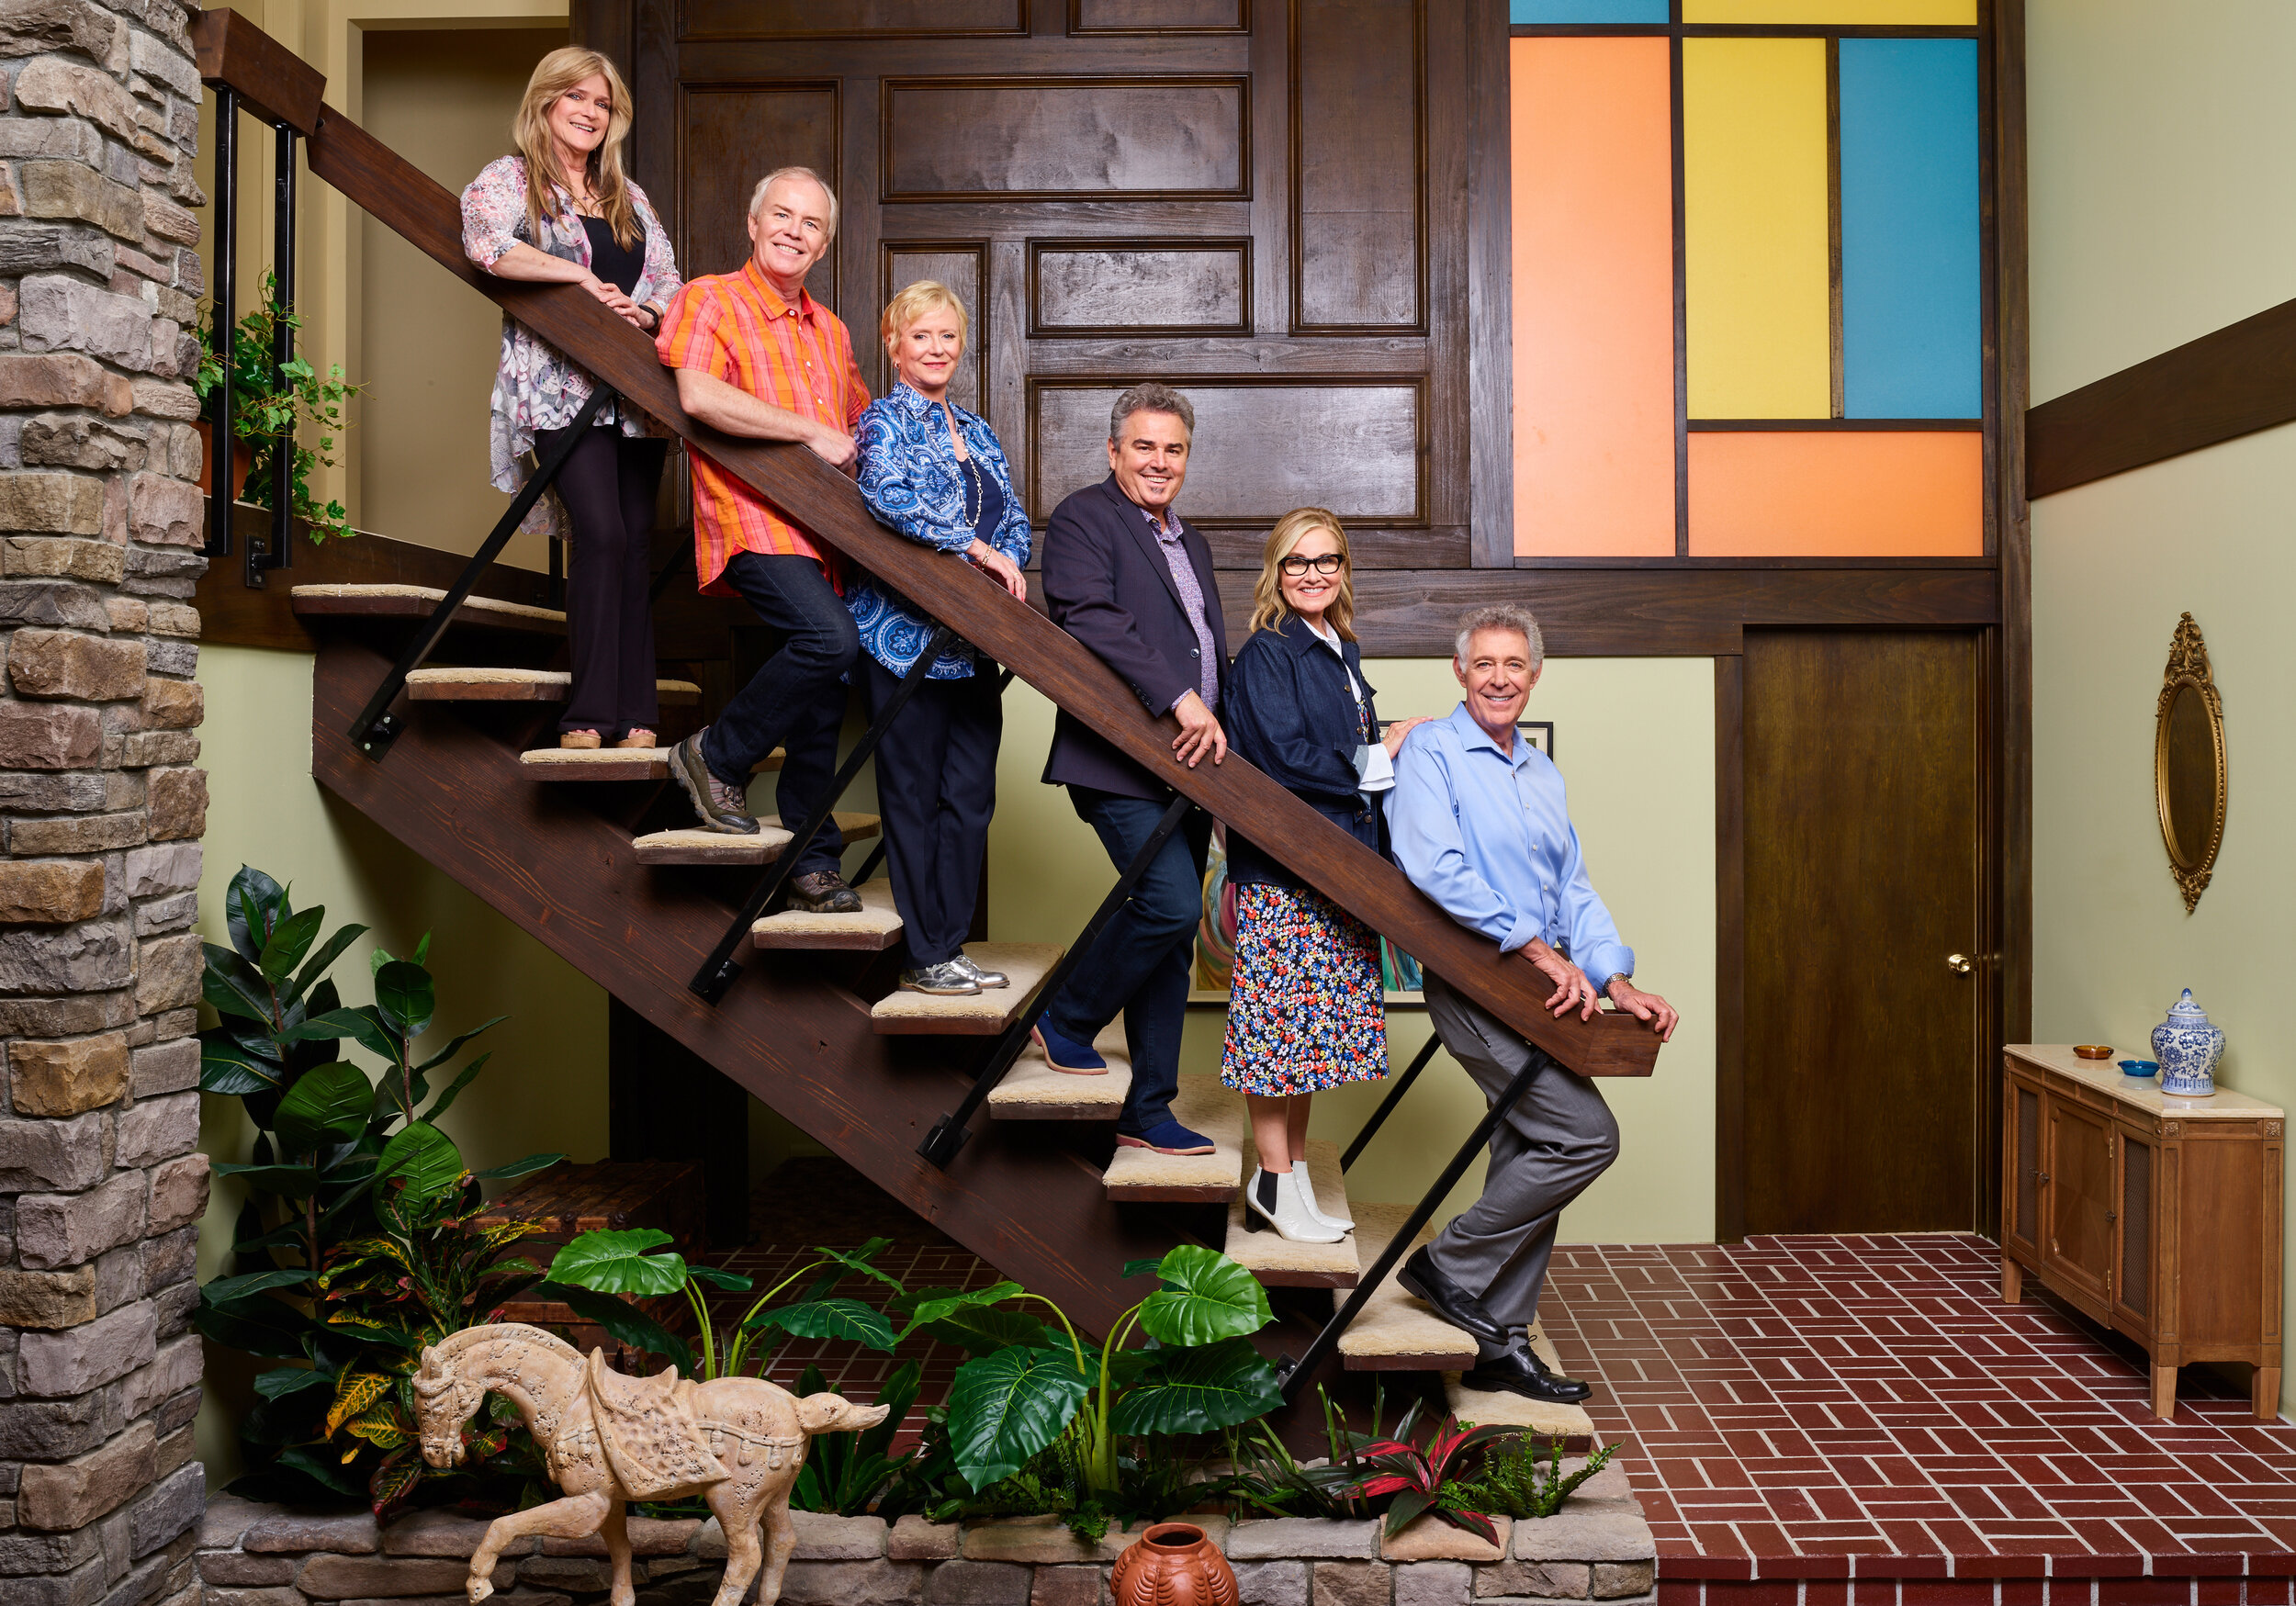 The original Brady Bunch cast (left to right: Susan Olsen, Mike Lookinland, Eve Plumb, Christopher Knight, Maureen McCormick, and Barry Williams) recreate the iconic Brady family portrait at the recently renovated Brady home in Studio City, California, as seen on A Very Brady Renovation.